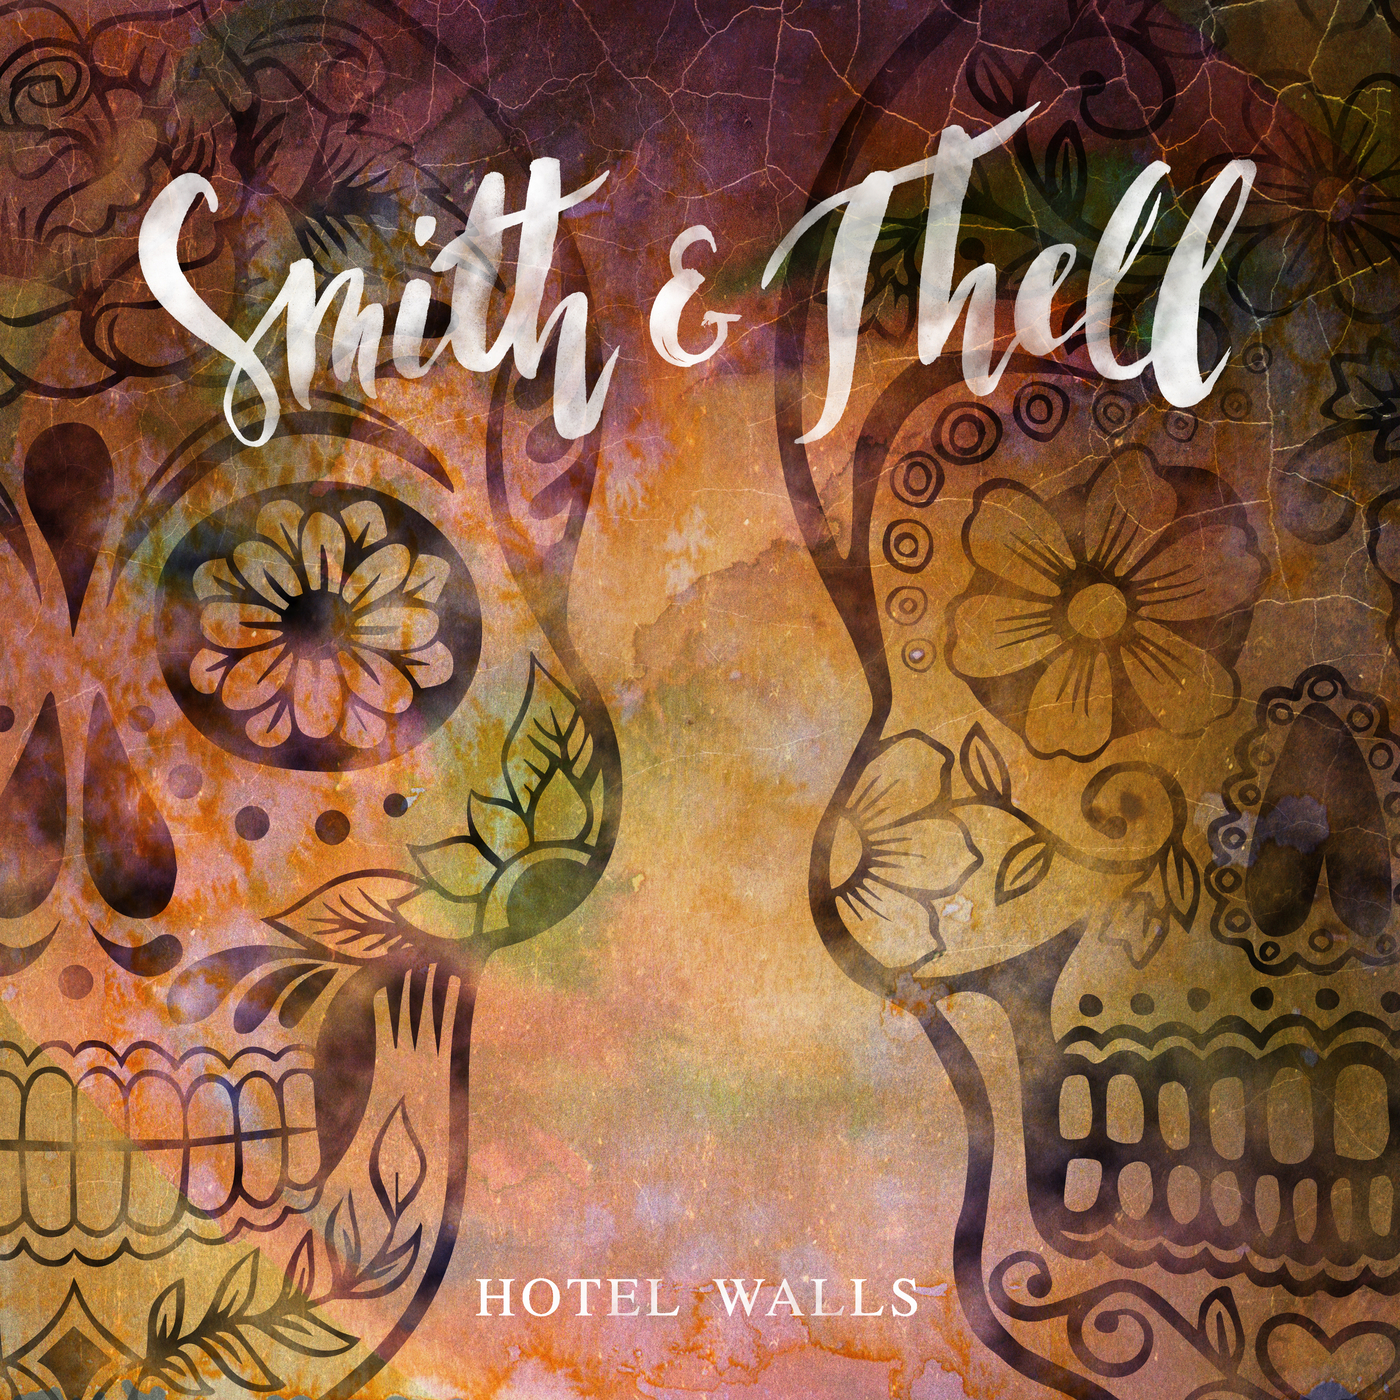 Hotel Walls - Smith & Thell